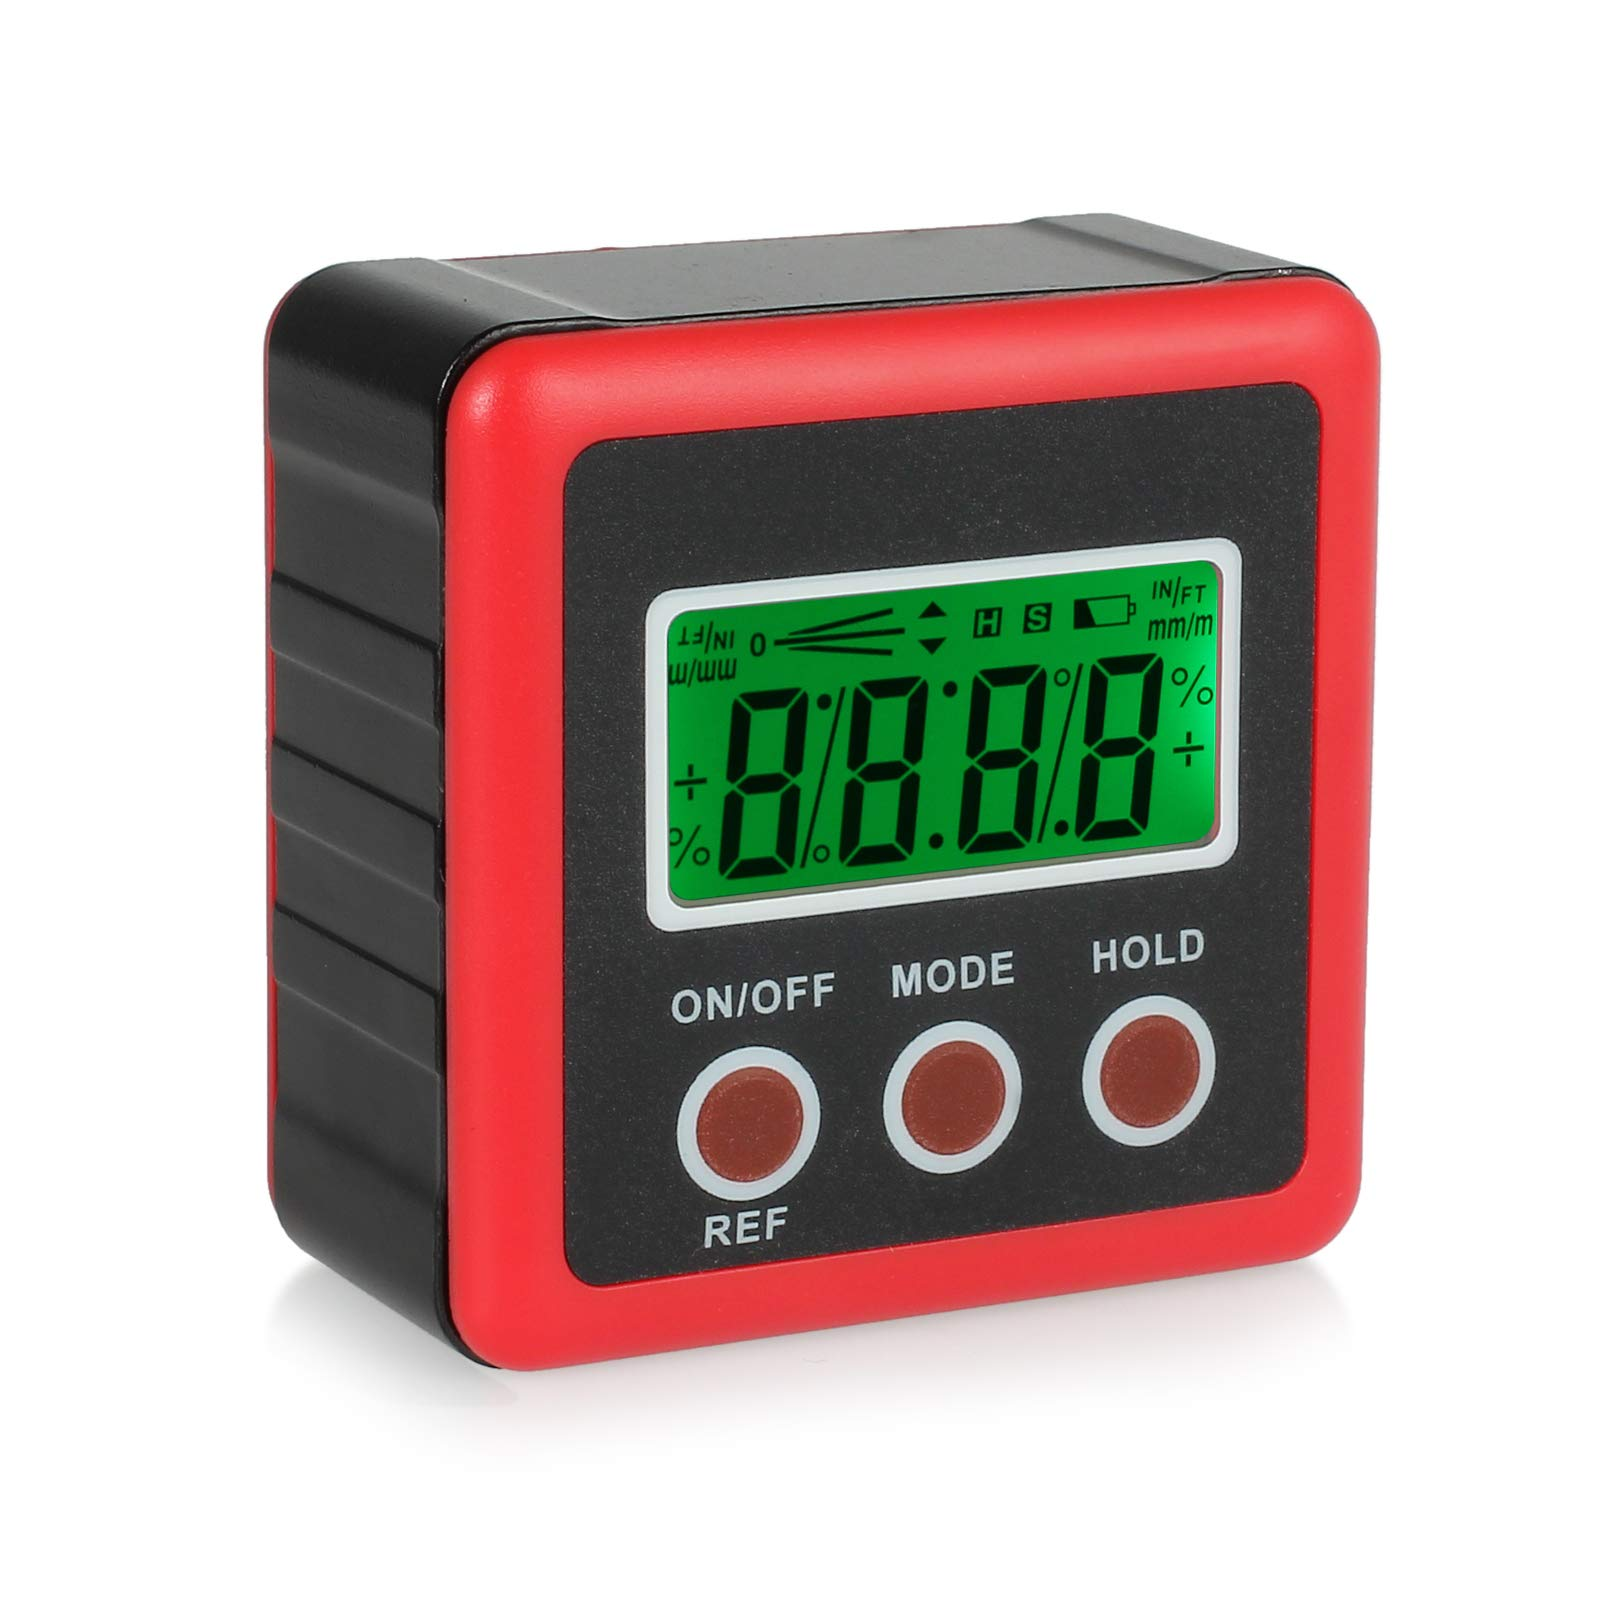 Justech Digital Angle Gauge Protractor Inclinometer Bevel Box Red by Justech